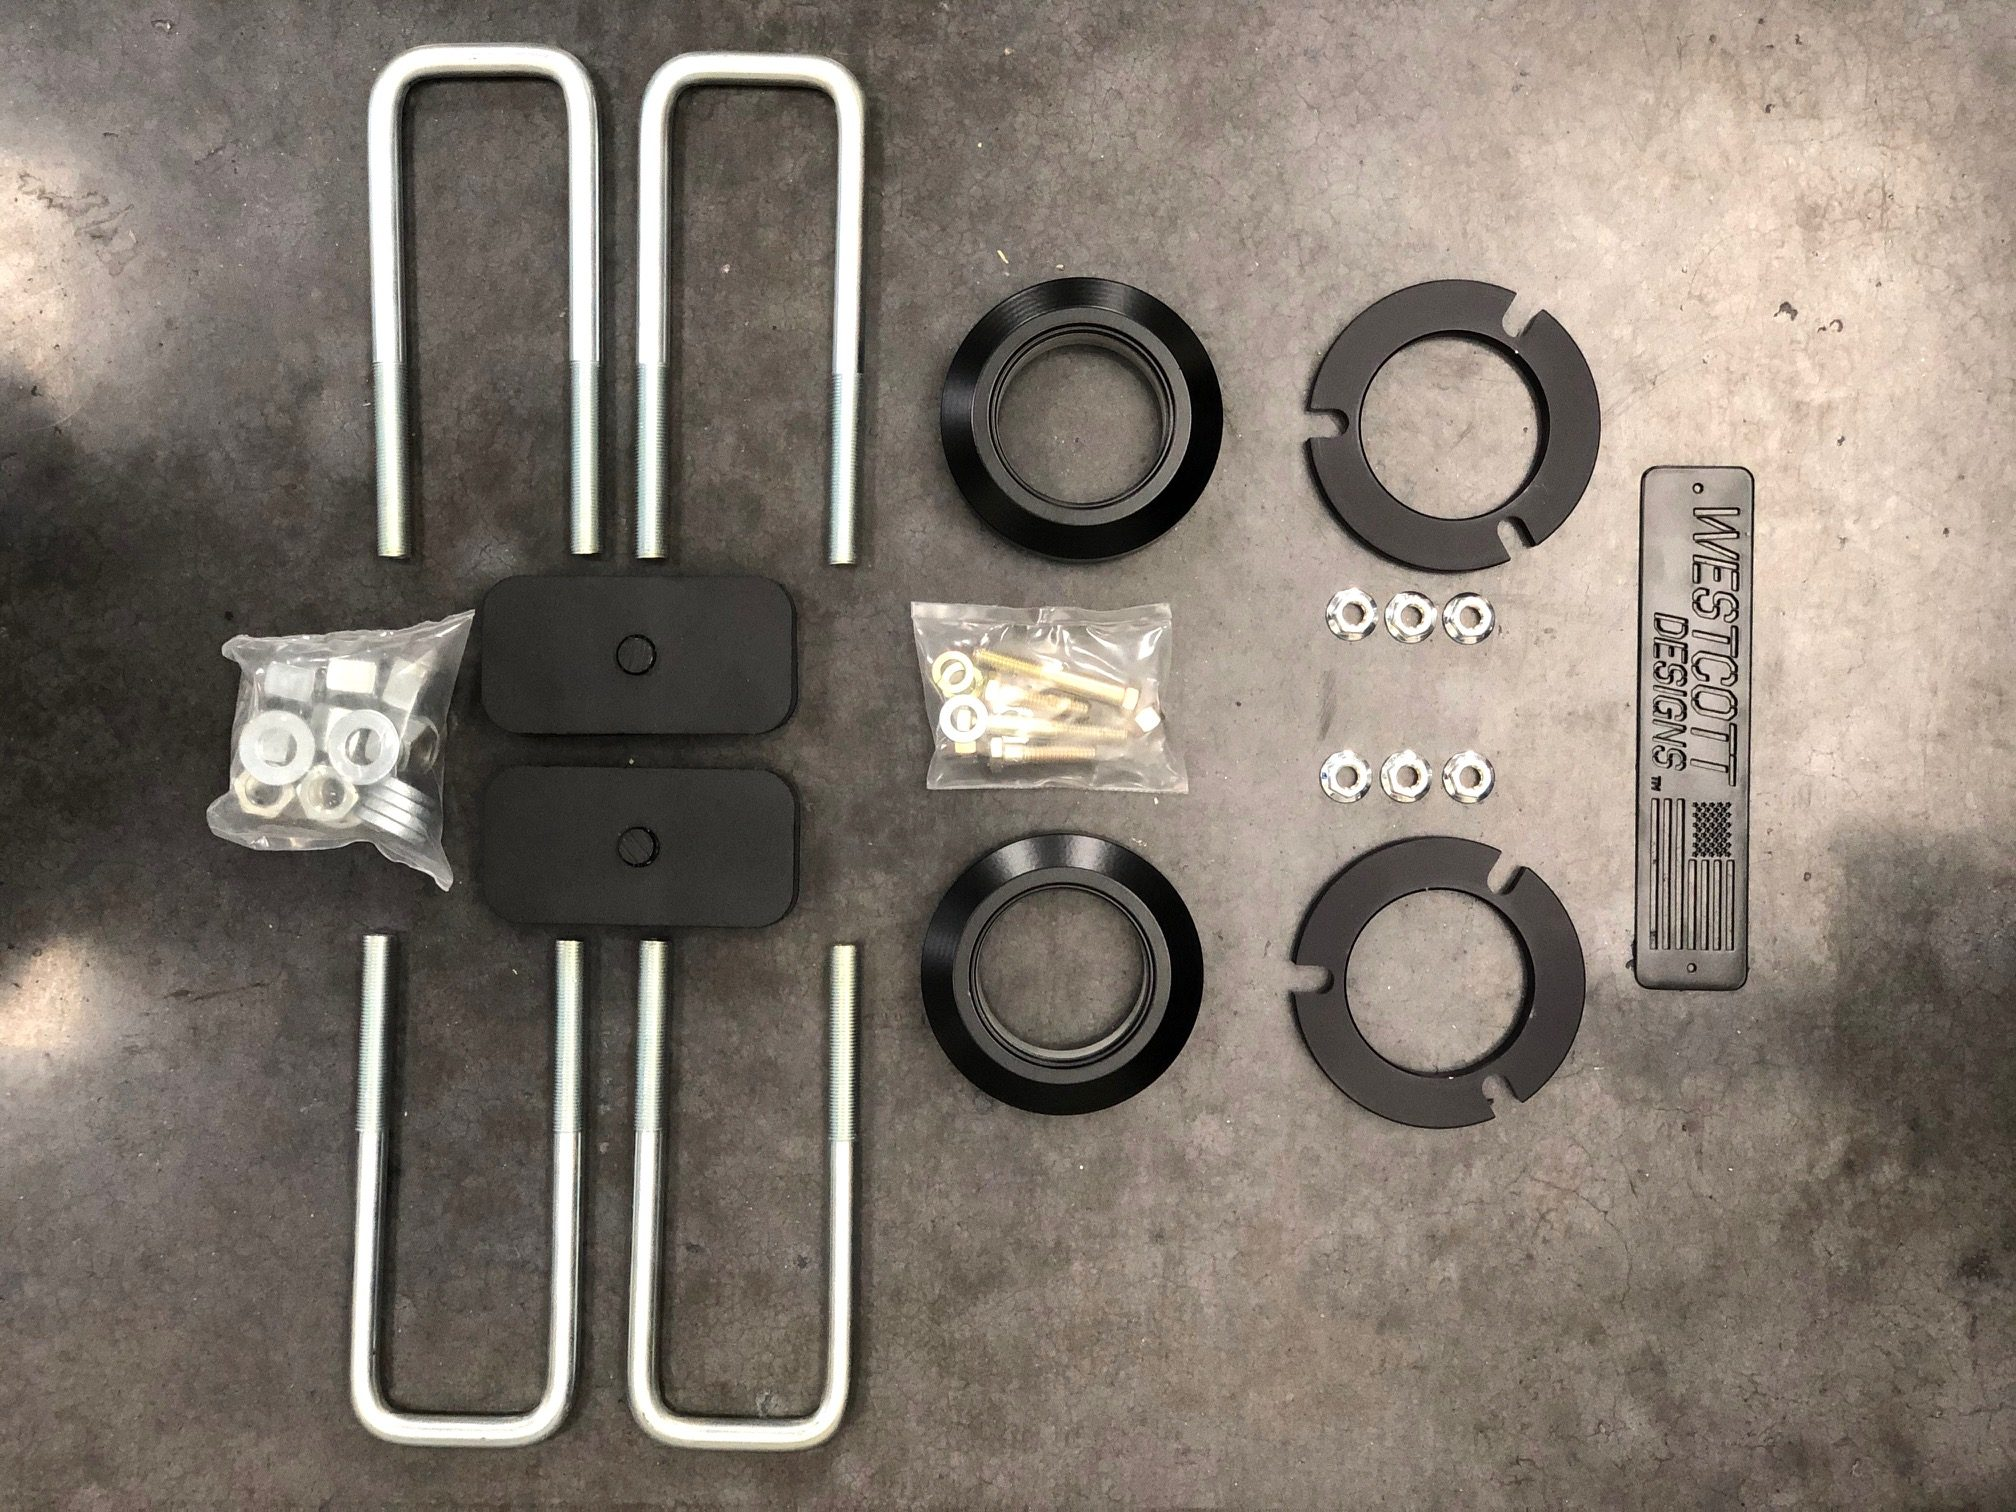 Wescott Designs Lift Kit Components for TRD Pro 3rd Gen Tacoma